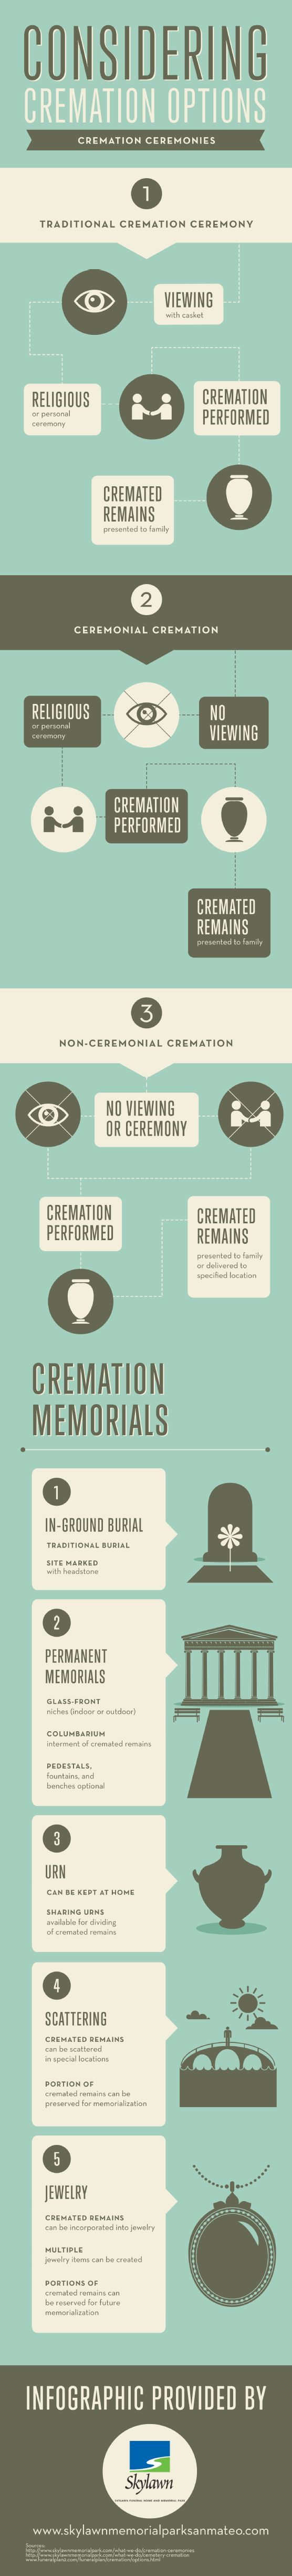 Non-ceremonial cremations do not have viewings or ceremonies. Once the cremation is performed, the remains are either given to the family or delivered